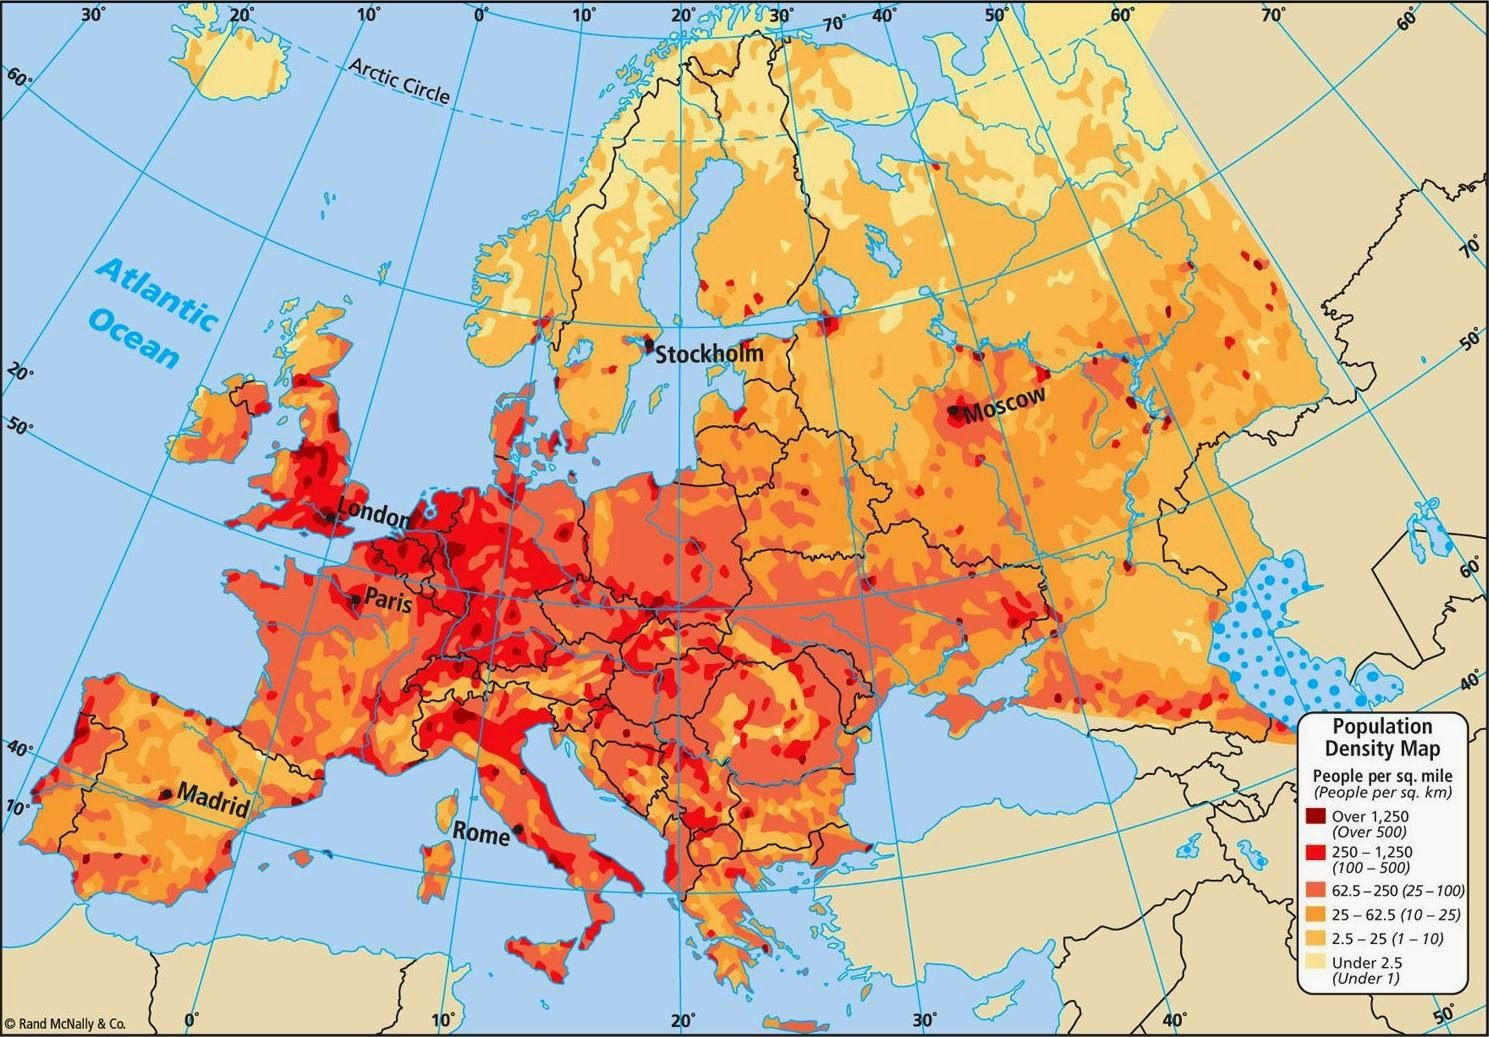 population map of europe Online Maps: Europe Population Density Map | Map, Infographic map